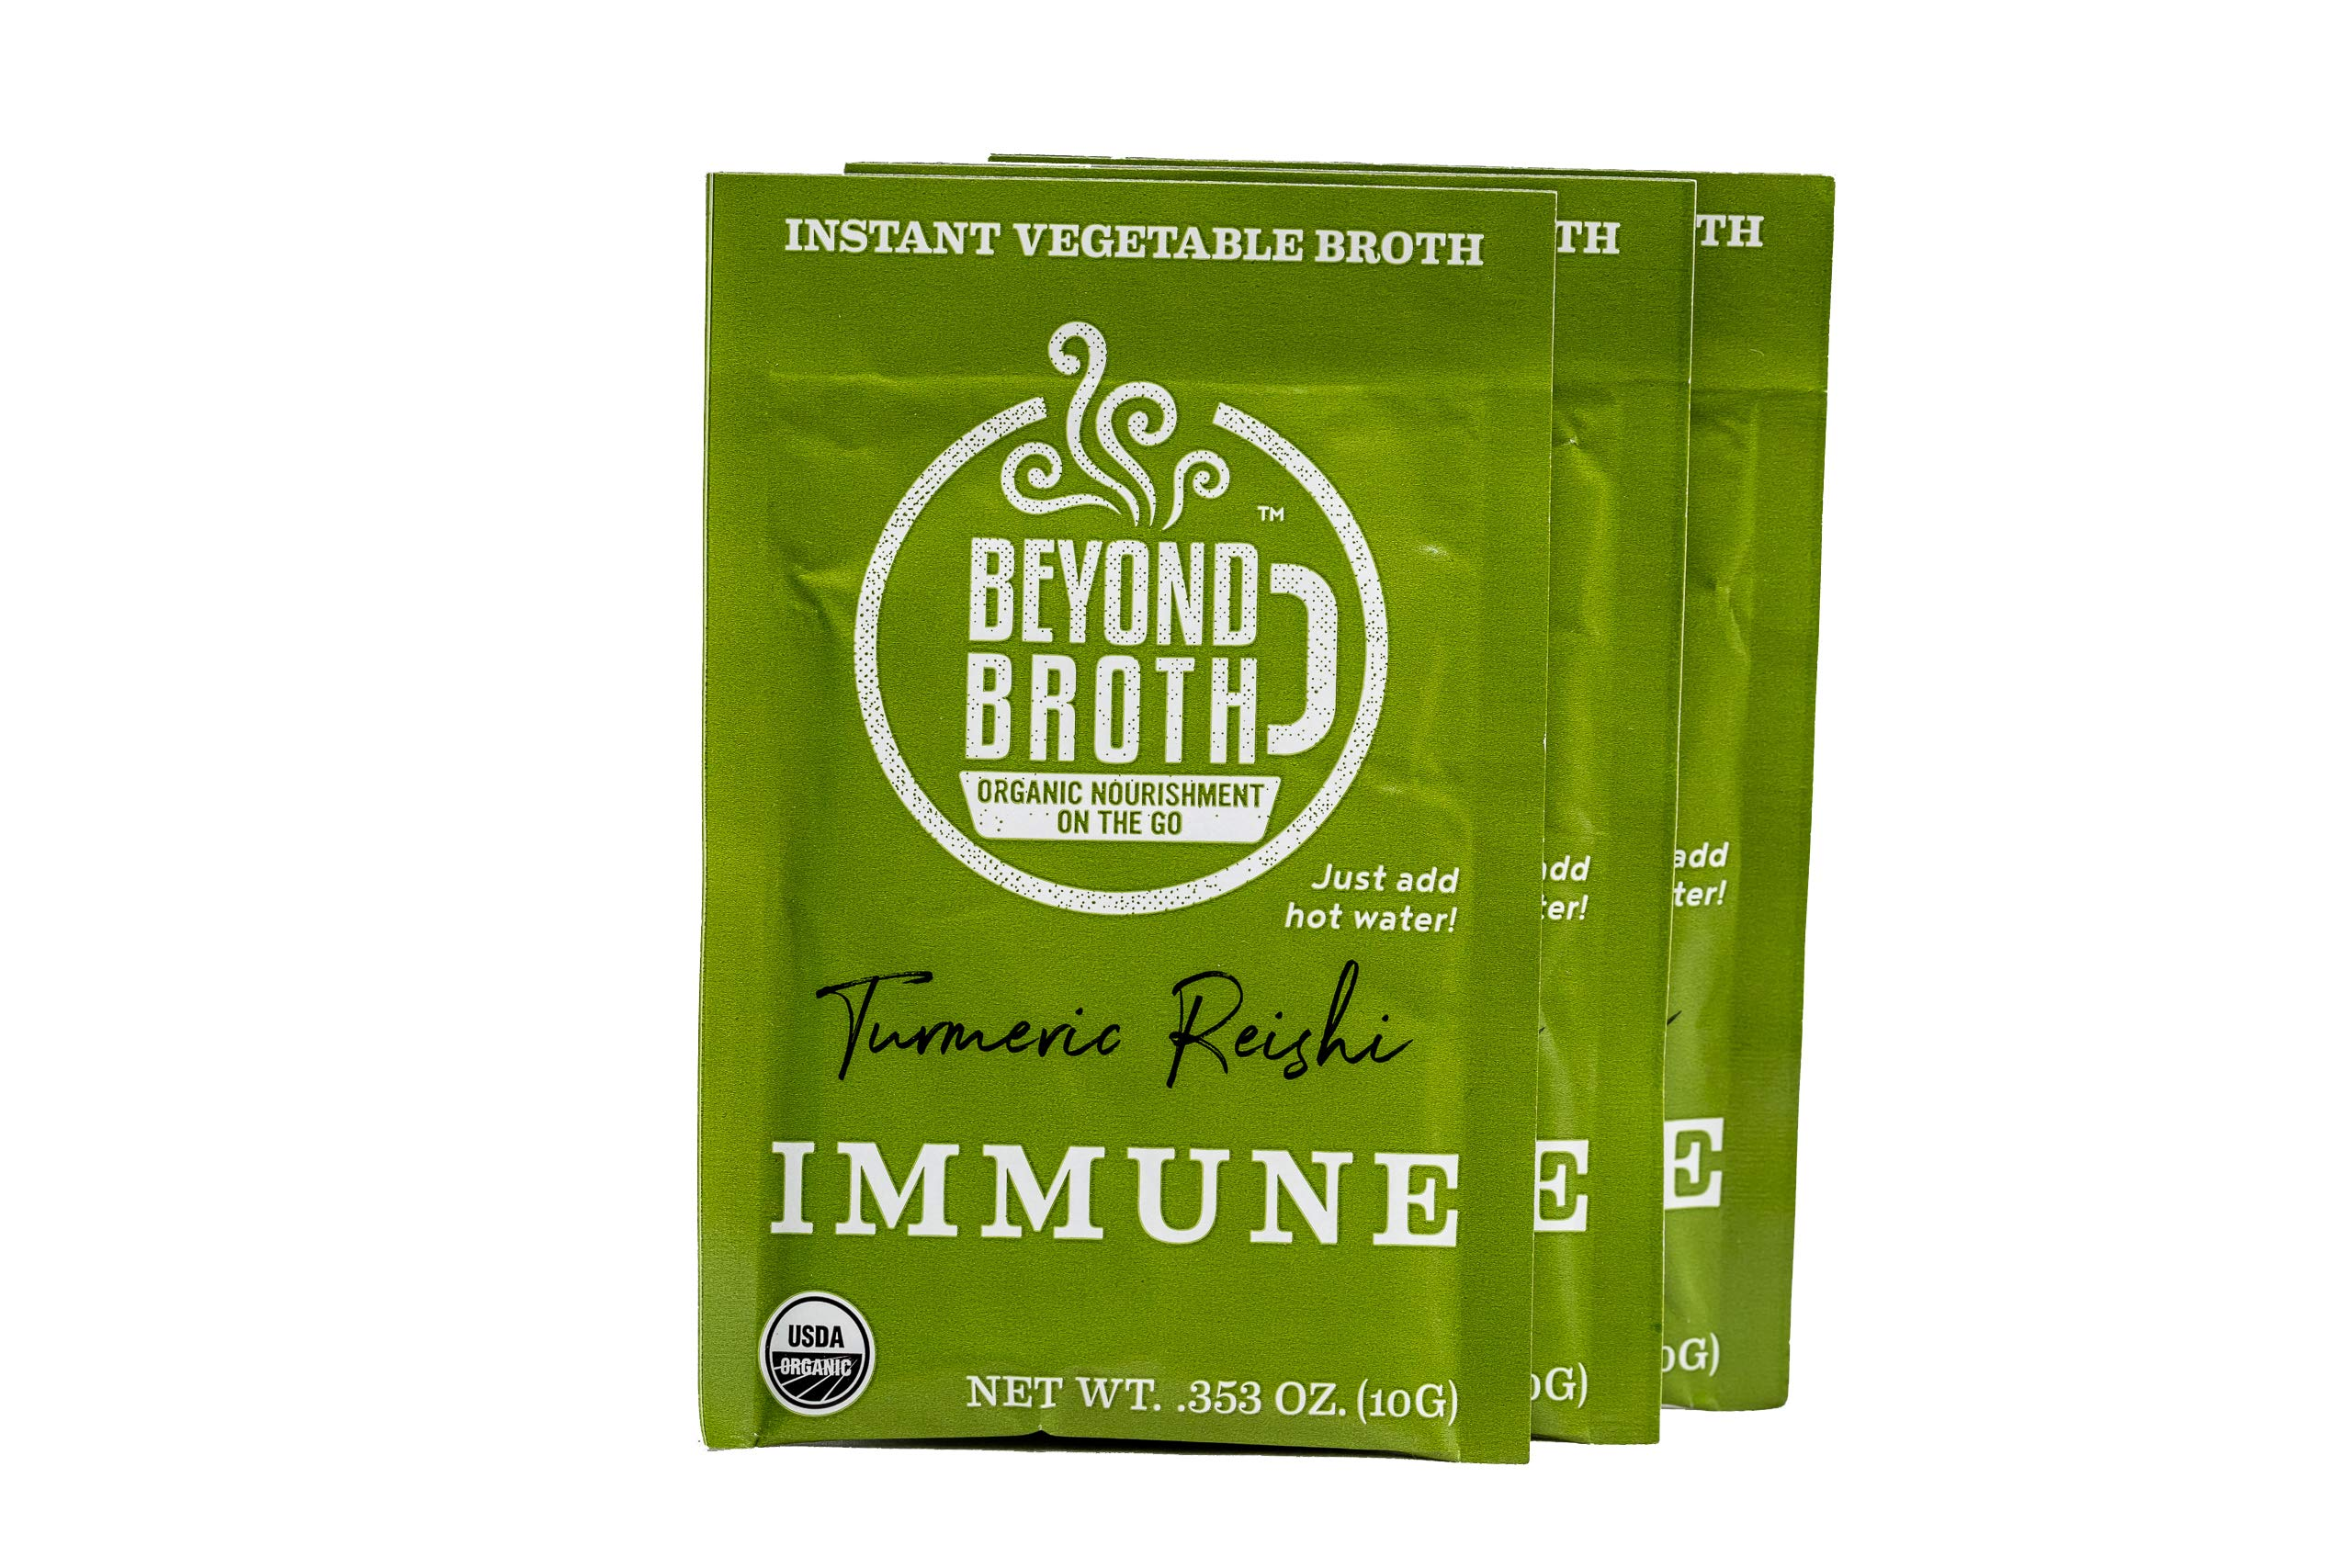 Beyond Broth Turmeric Reishi Immune Organic Vegan Vegetable Instant Sipping Broth; For On The Go Or Cooking, Keto, Paleo and Whole30 Friendly 3 single serve packets, Made in the USA